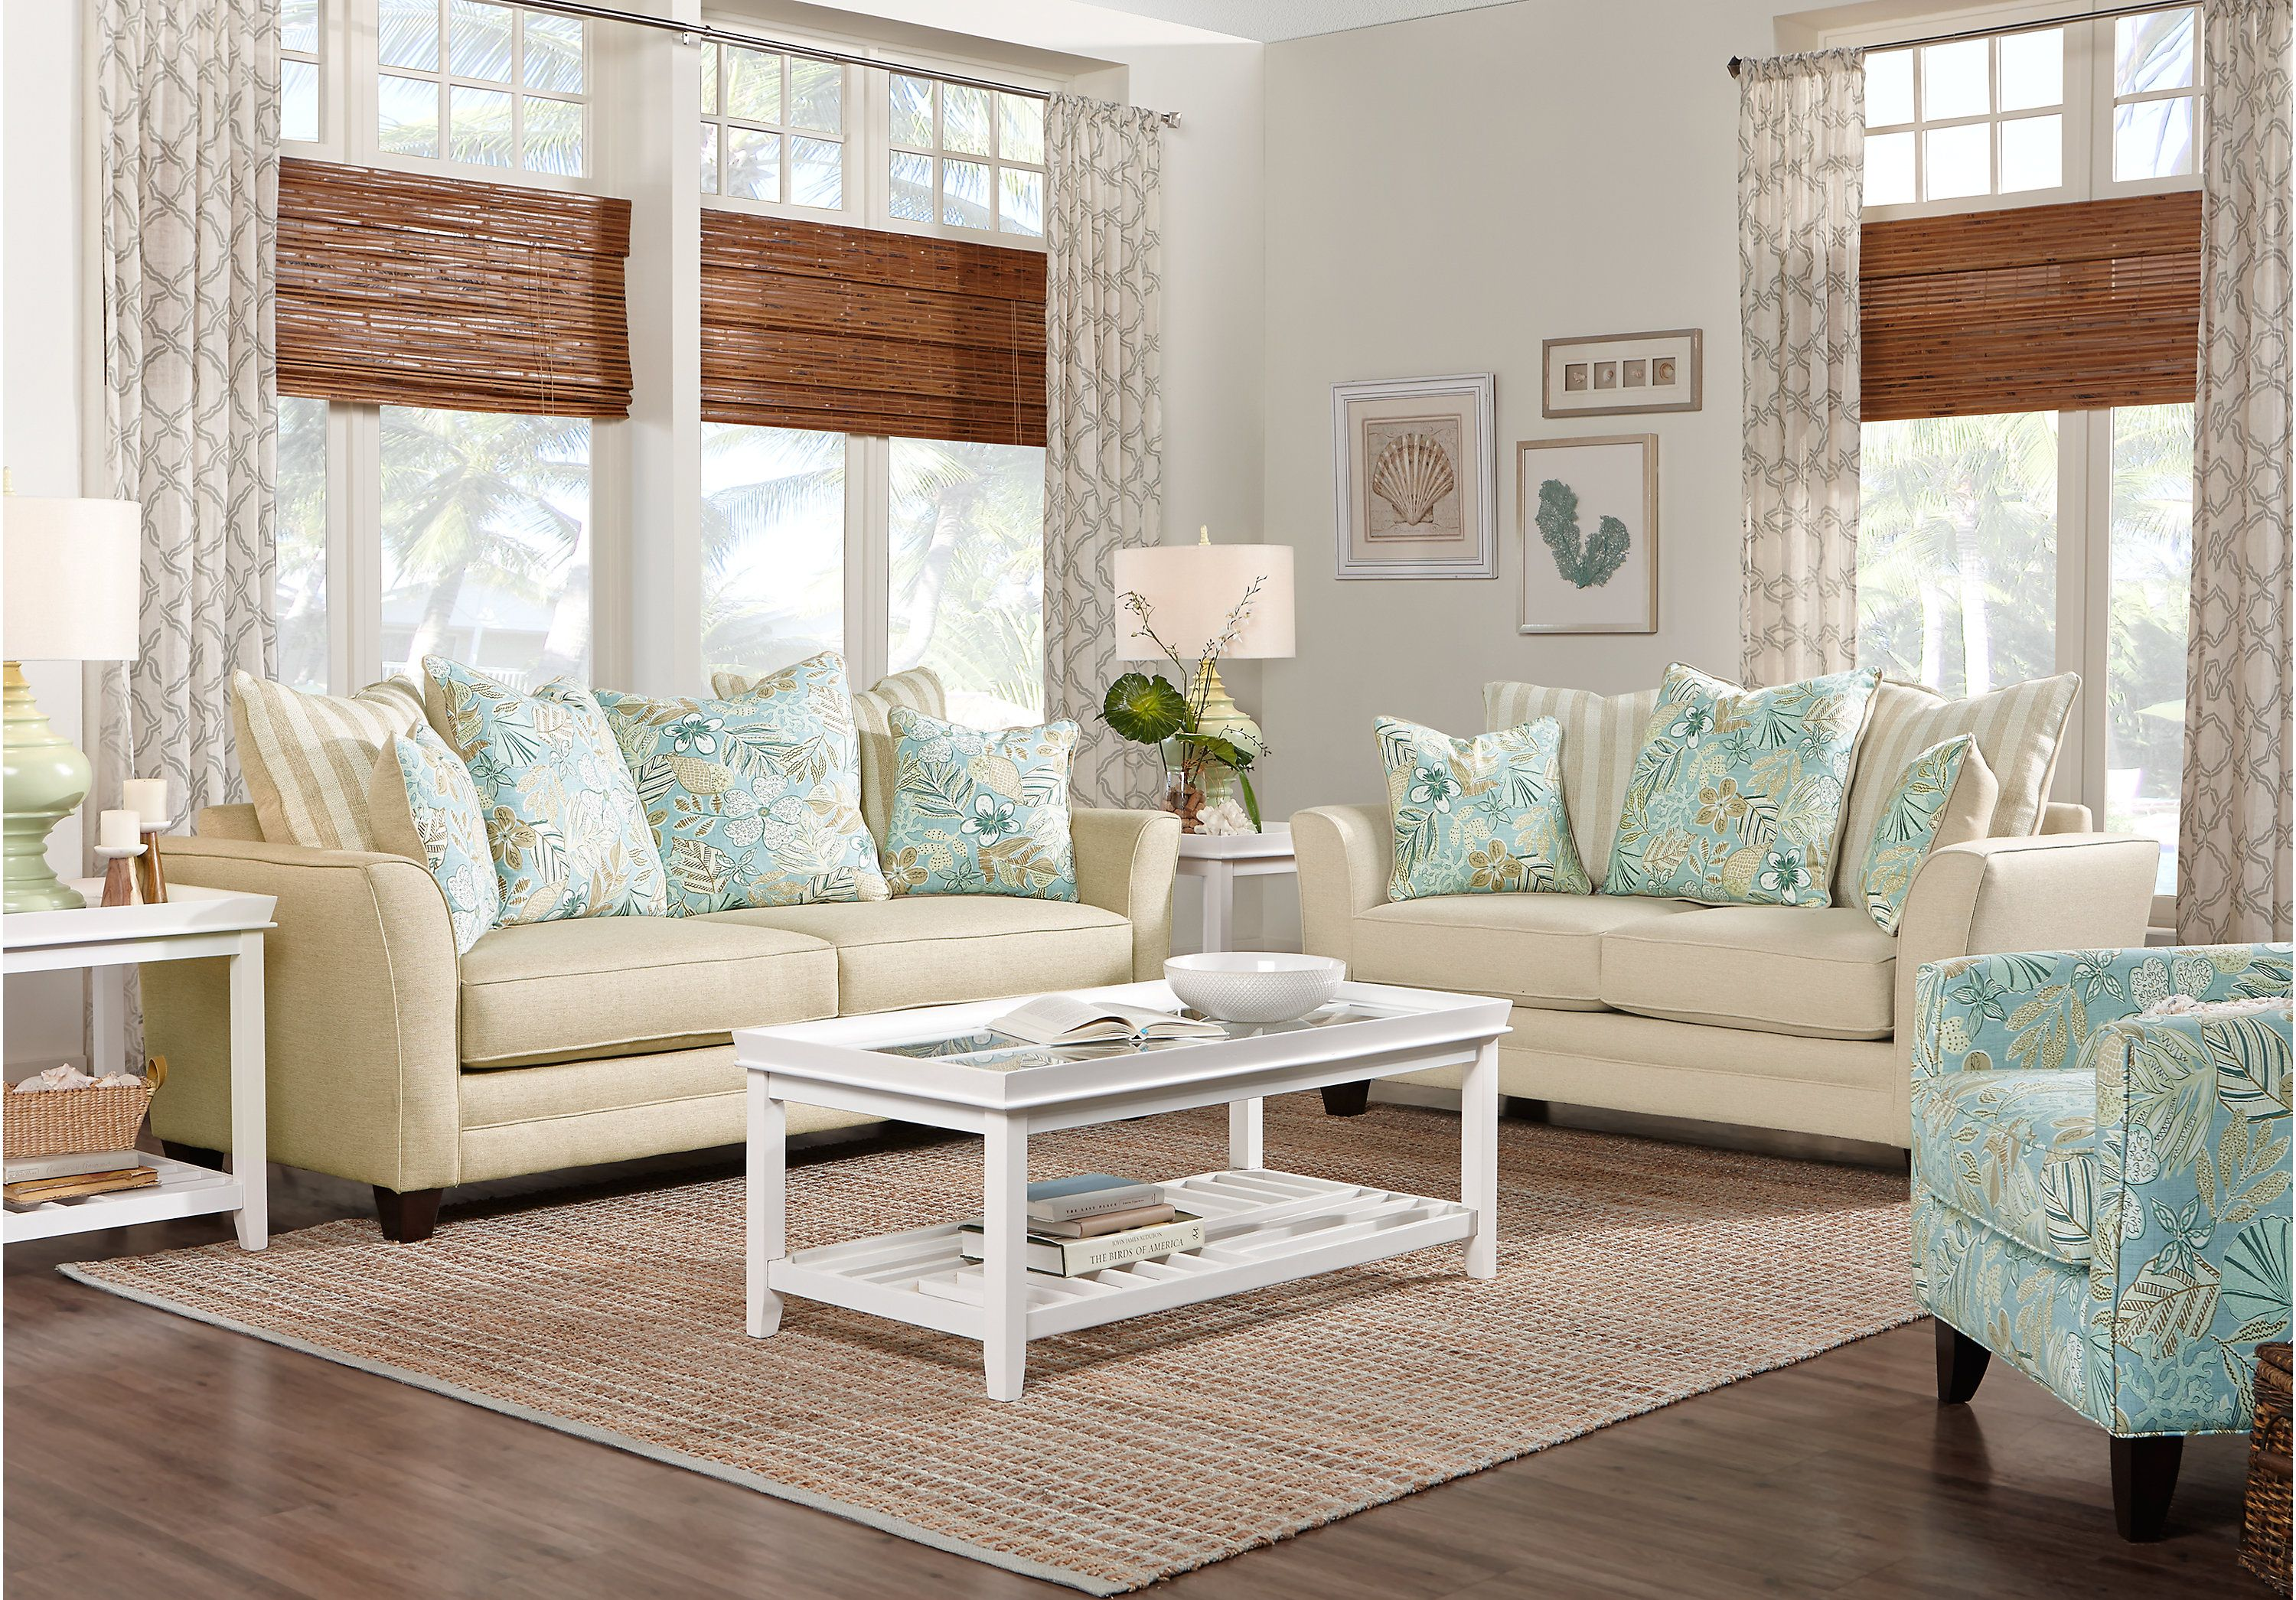 Cheap Living Room Design Picture Of Coastal Grove Khaki 7 Pc Living Room From Living Room